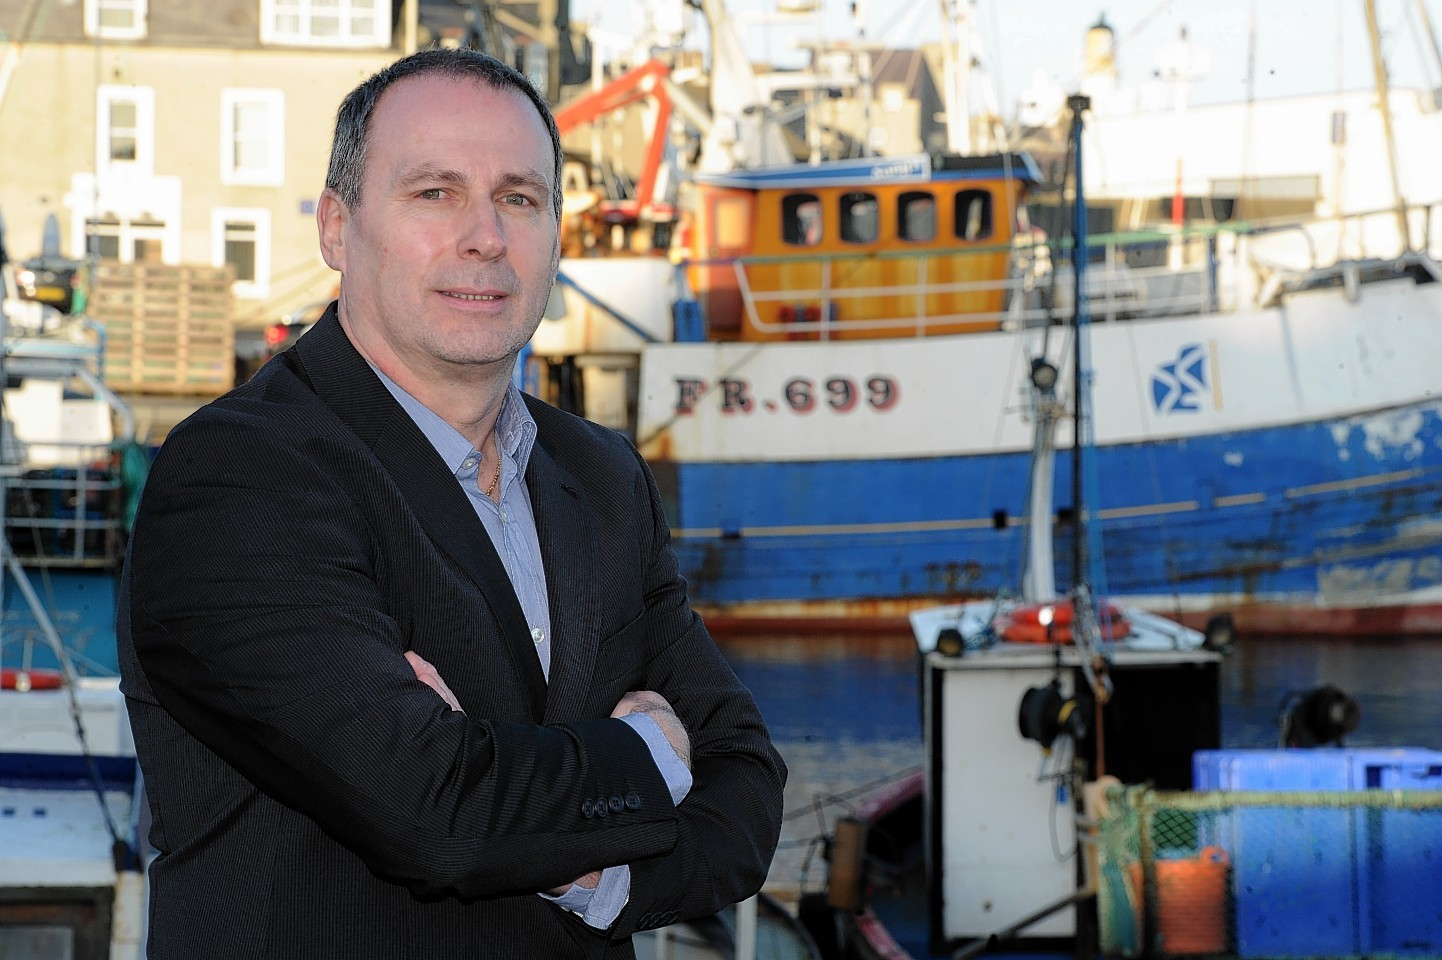 Scottish industry chief Mike Park now has a key role with Blue Fish